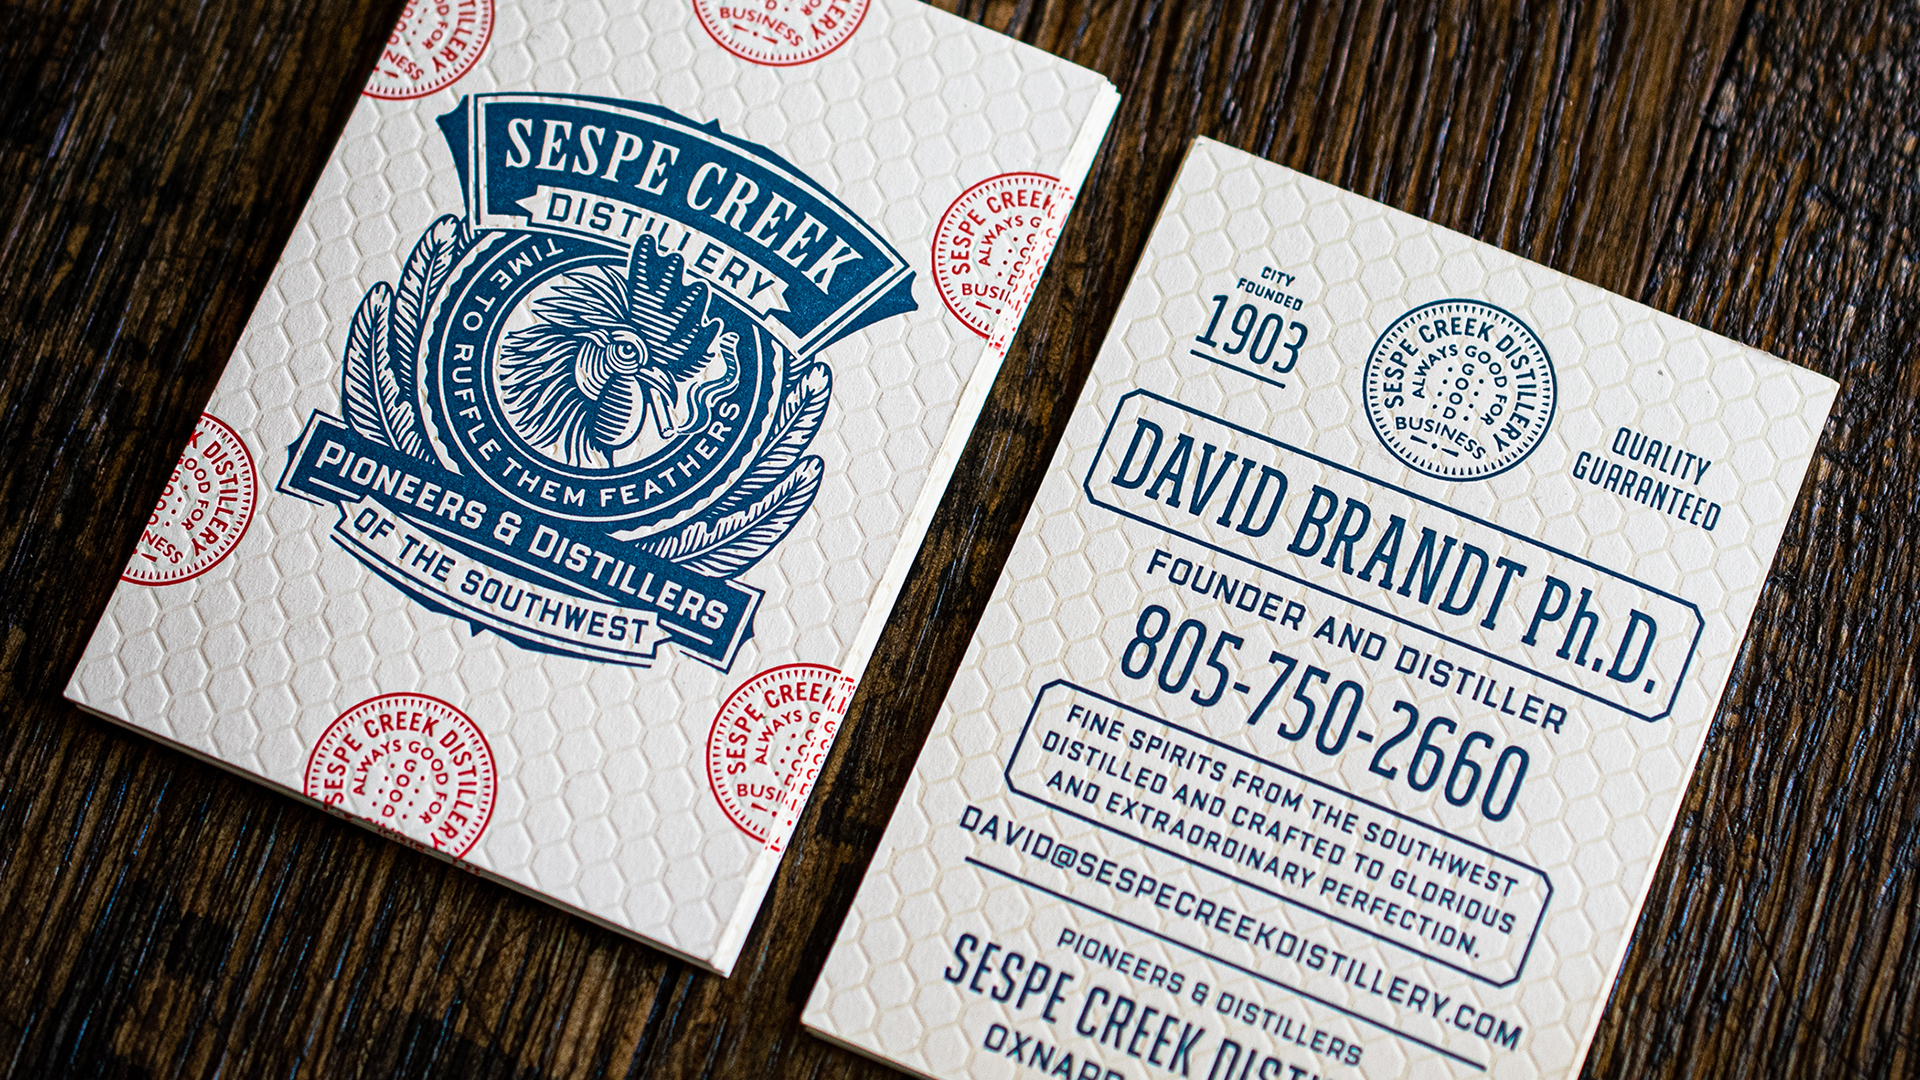 Good example of letterpress and debossing techniques on business cards from Sespe Creek Distillery designed by Chad Michael Studio